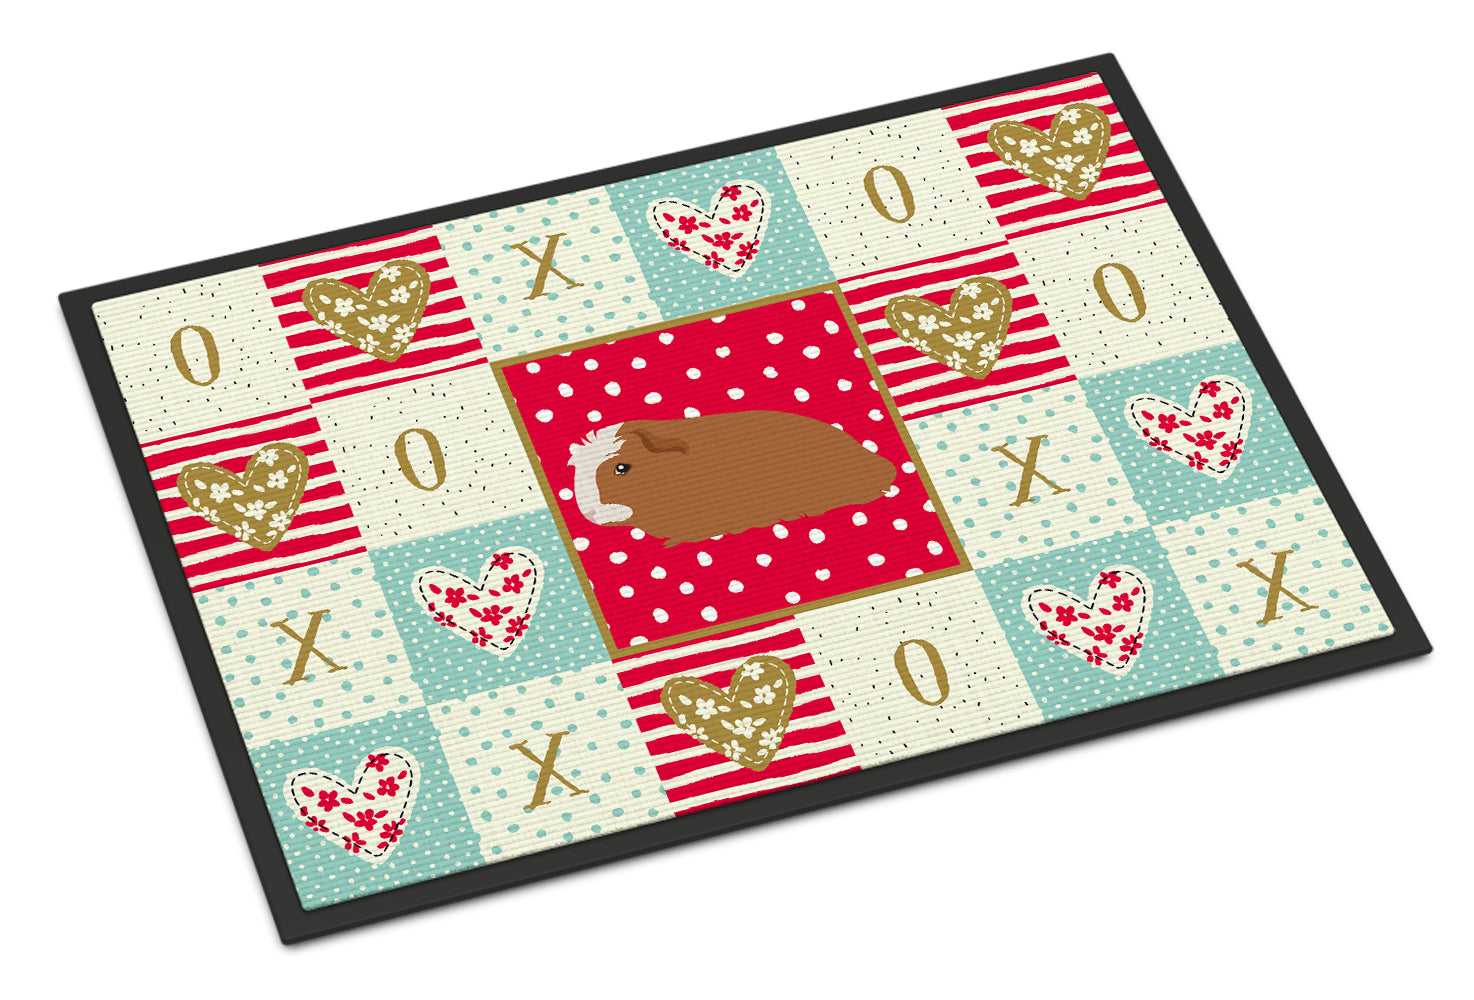 Crested Guinea Pig Love Indoor or Outdoor Mat 18x27 CK5428MAT by Caroline's Treasures